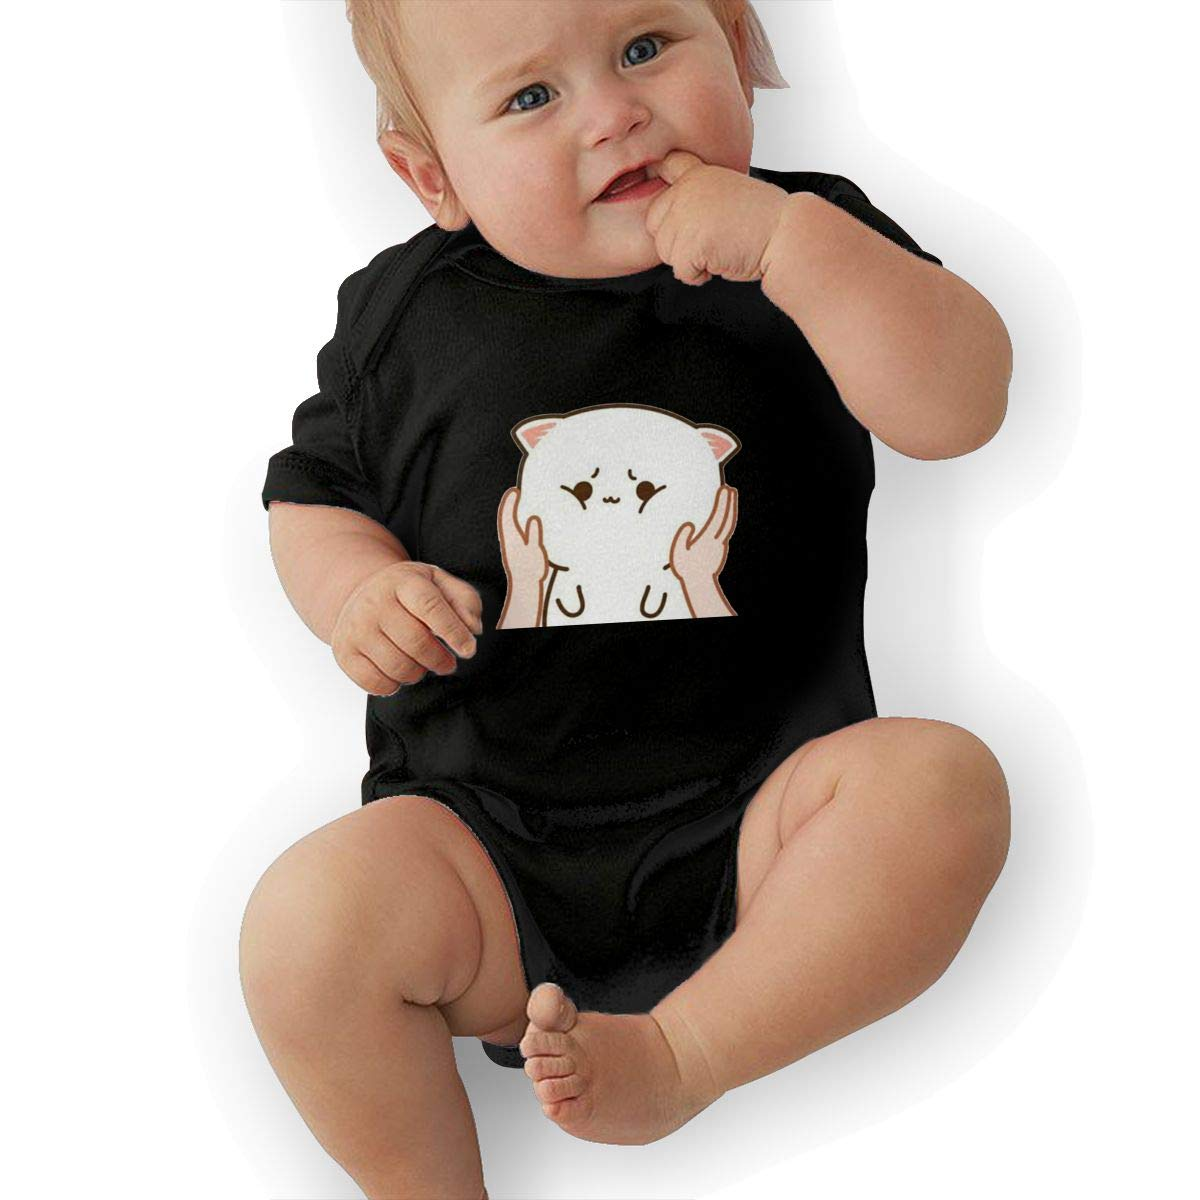 Hold The Cats Face in Your Hand Newborn Infant Toddler Baby Girls Boys Bodysuit Short Sleeve 0-24 MonthsBlack 18M